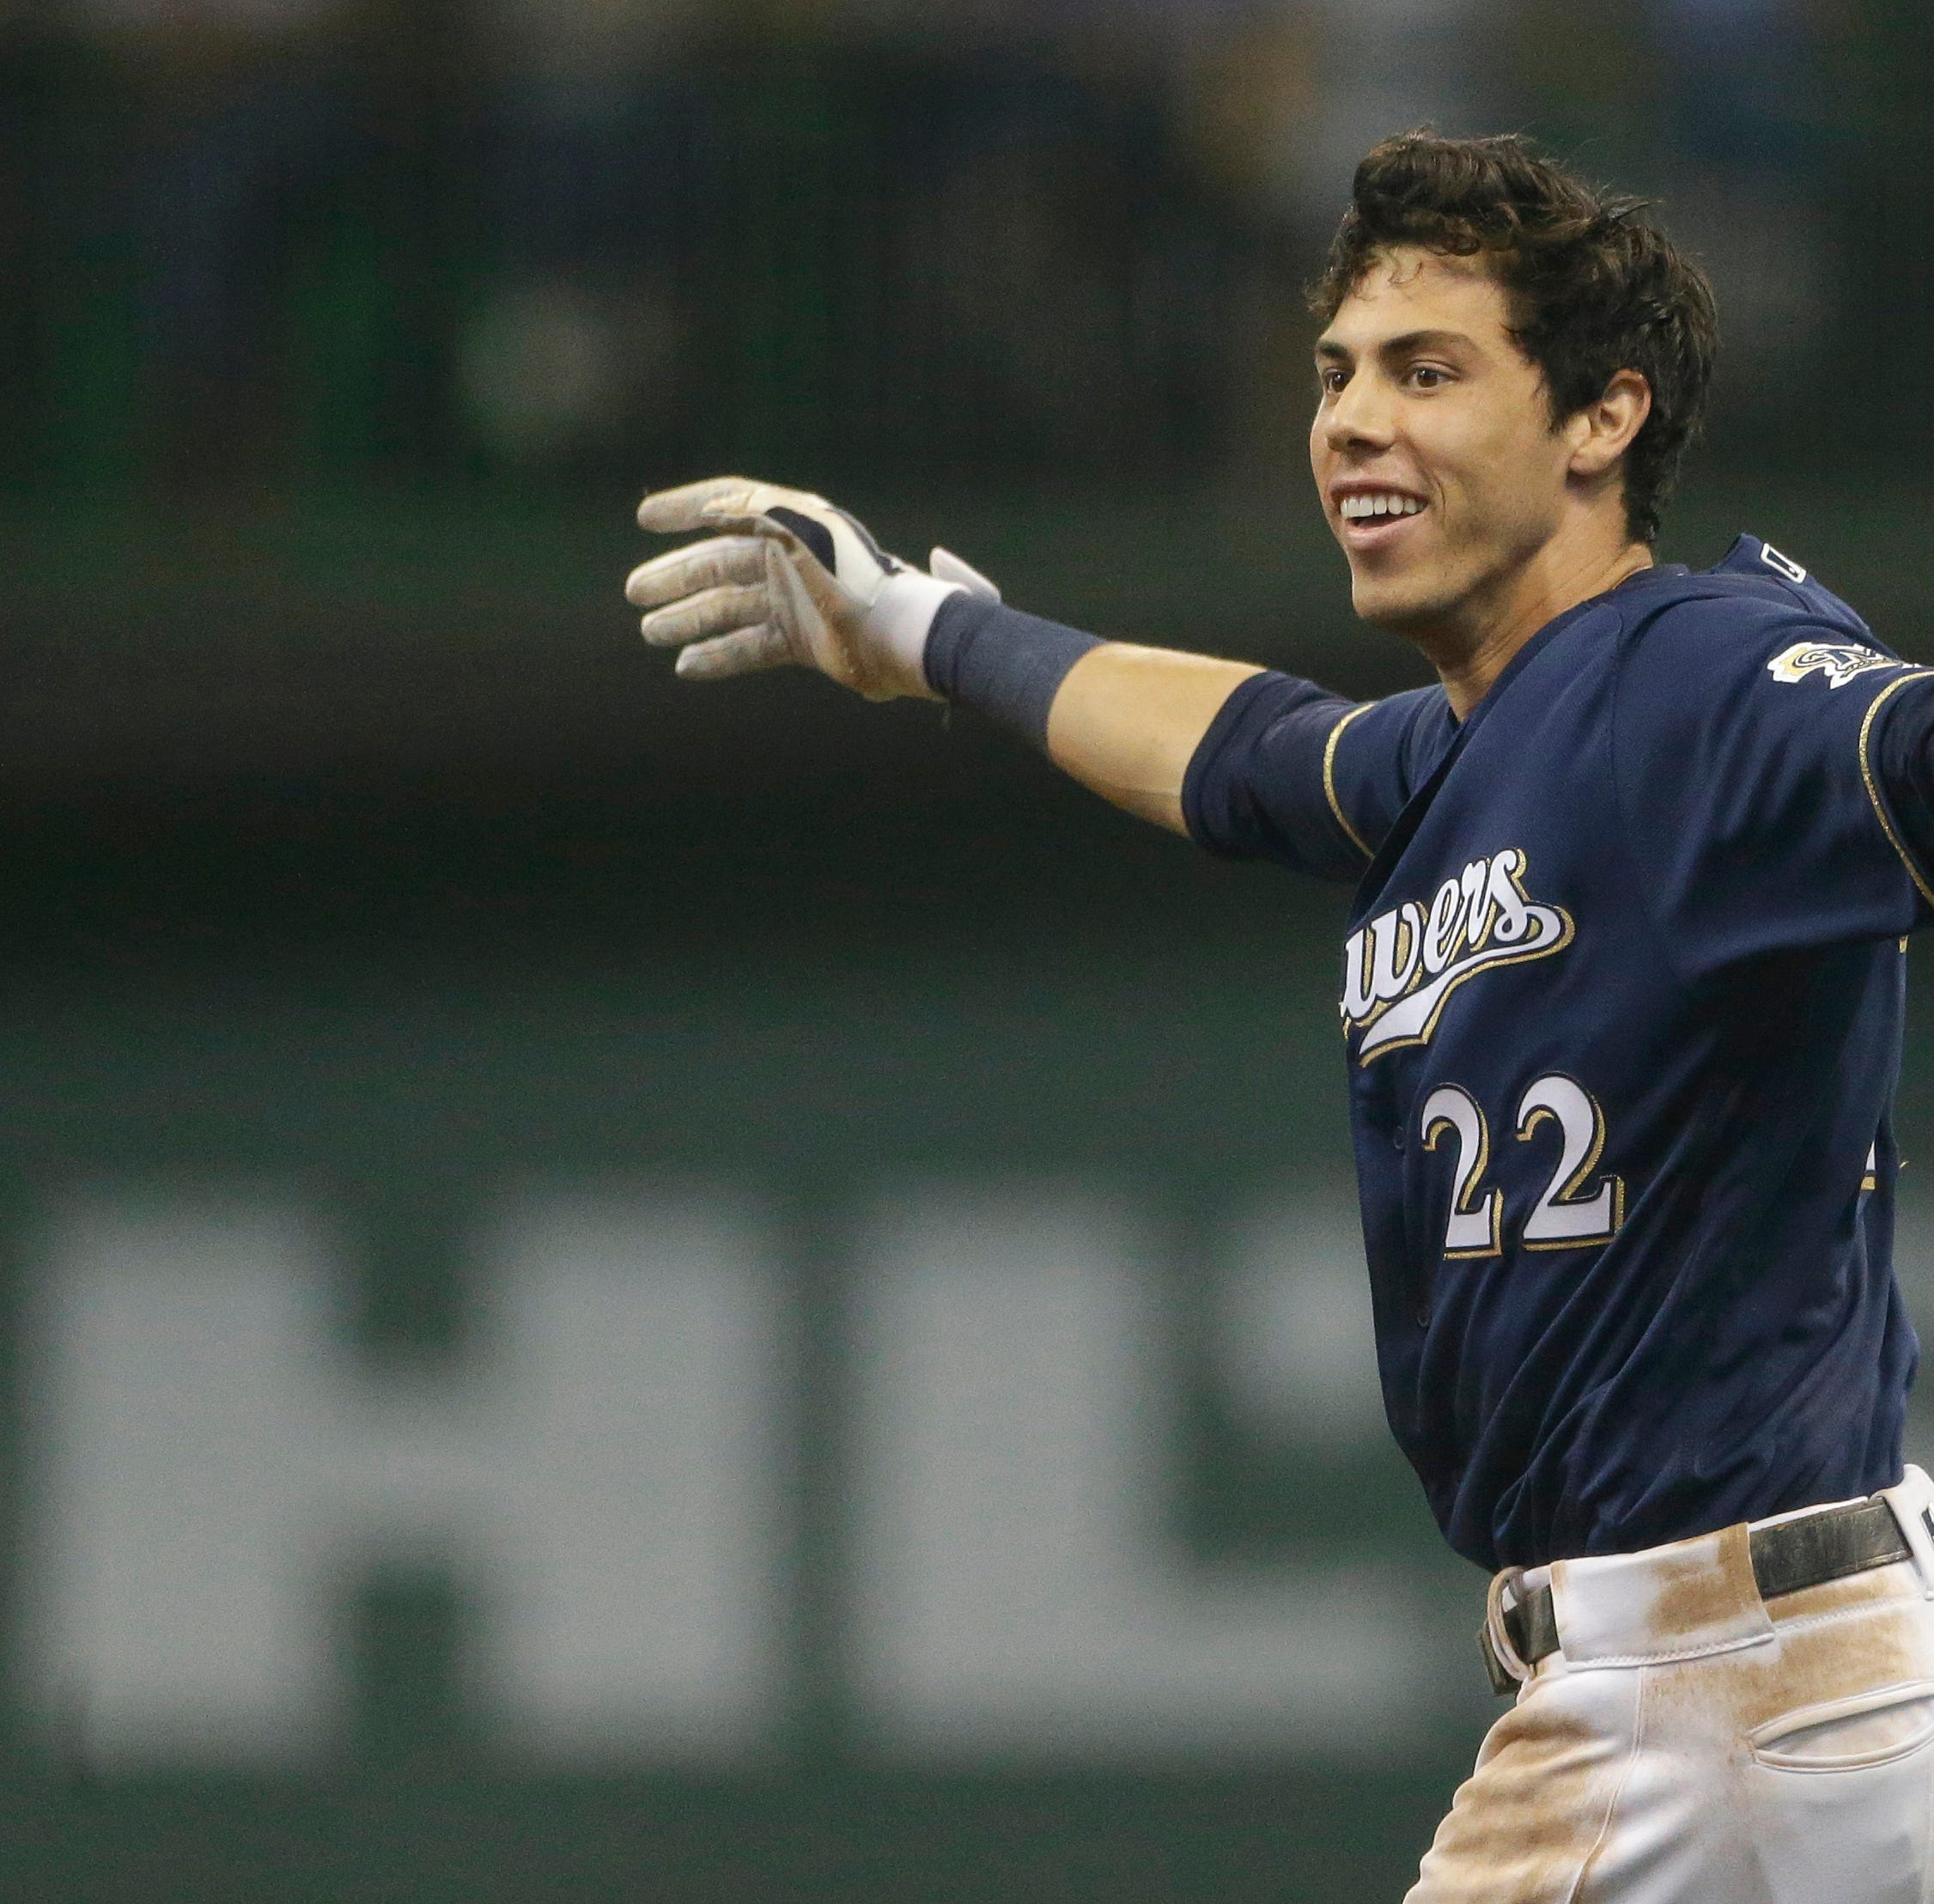 Notes: Christian Yelich arrives in camp, eager to get back to baseball